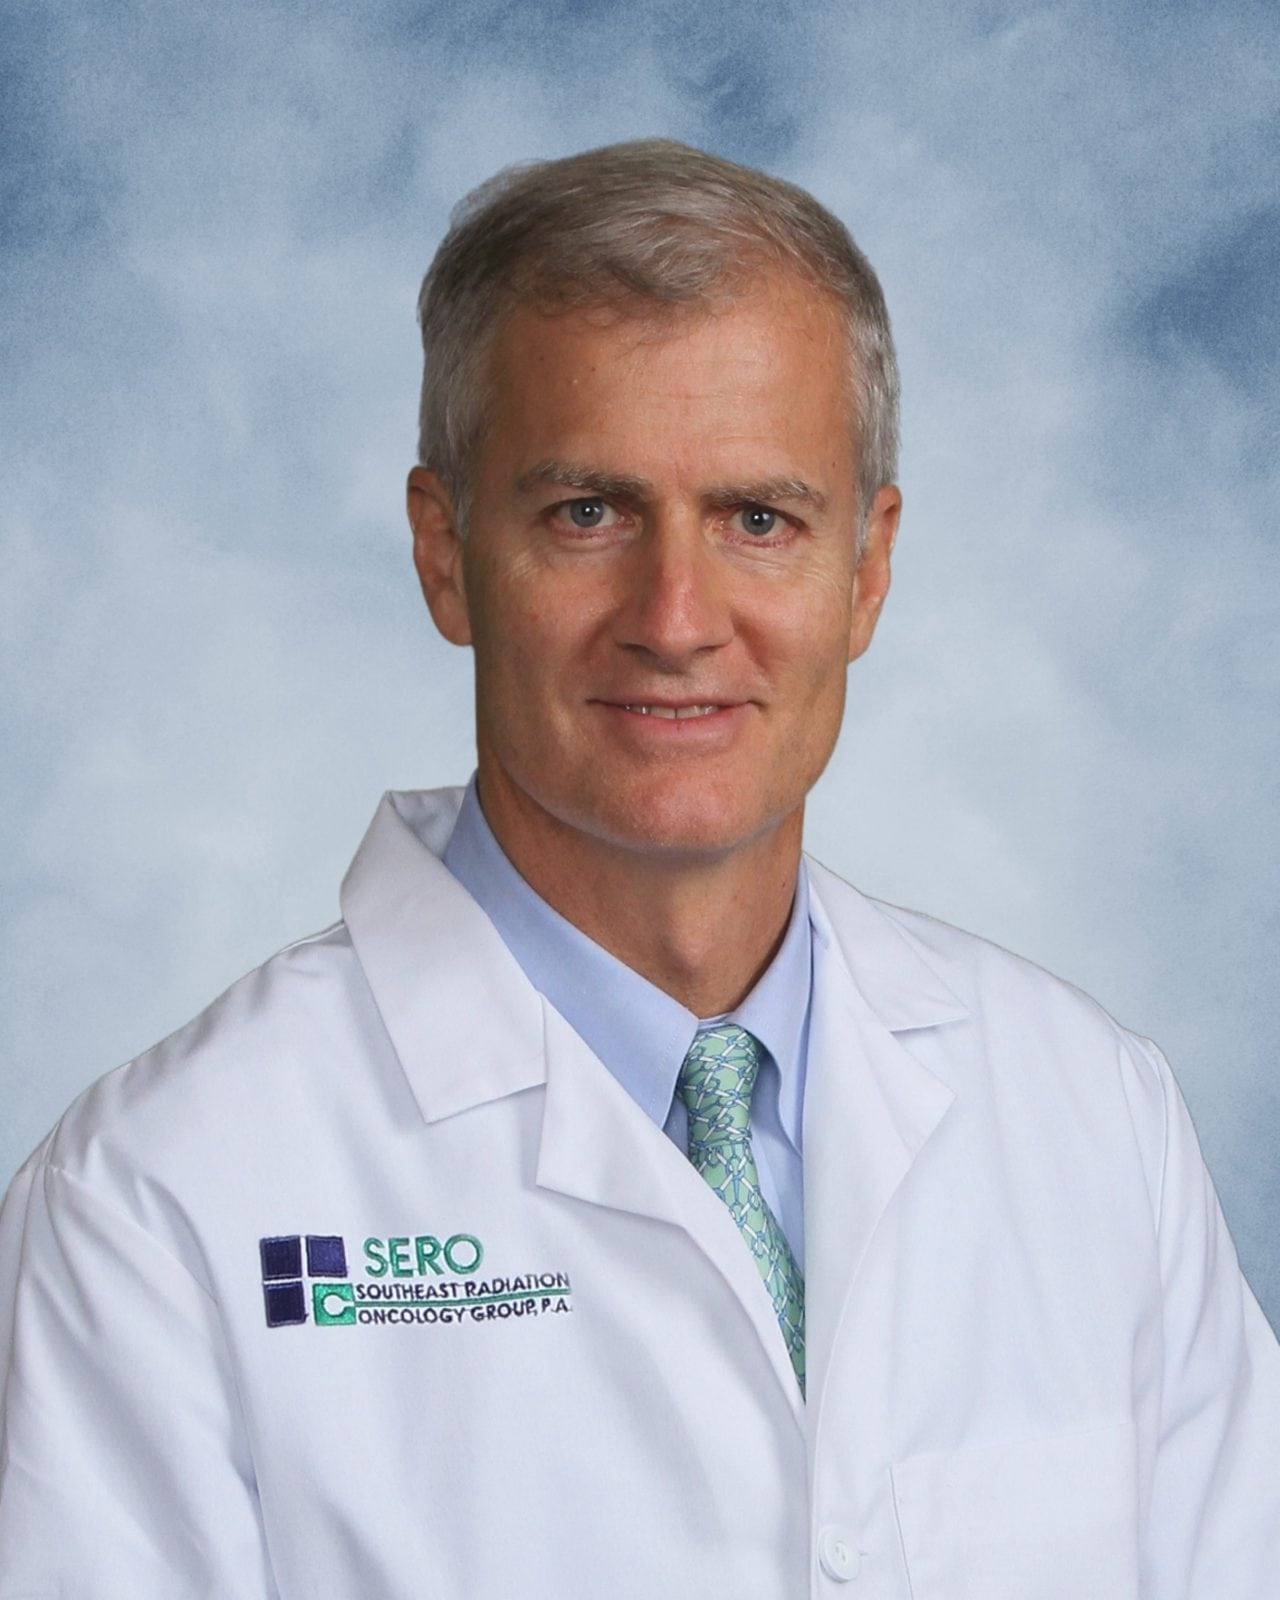 Bradley T Mccall Md Southeast Radiation Oncology Group